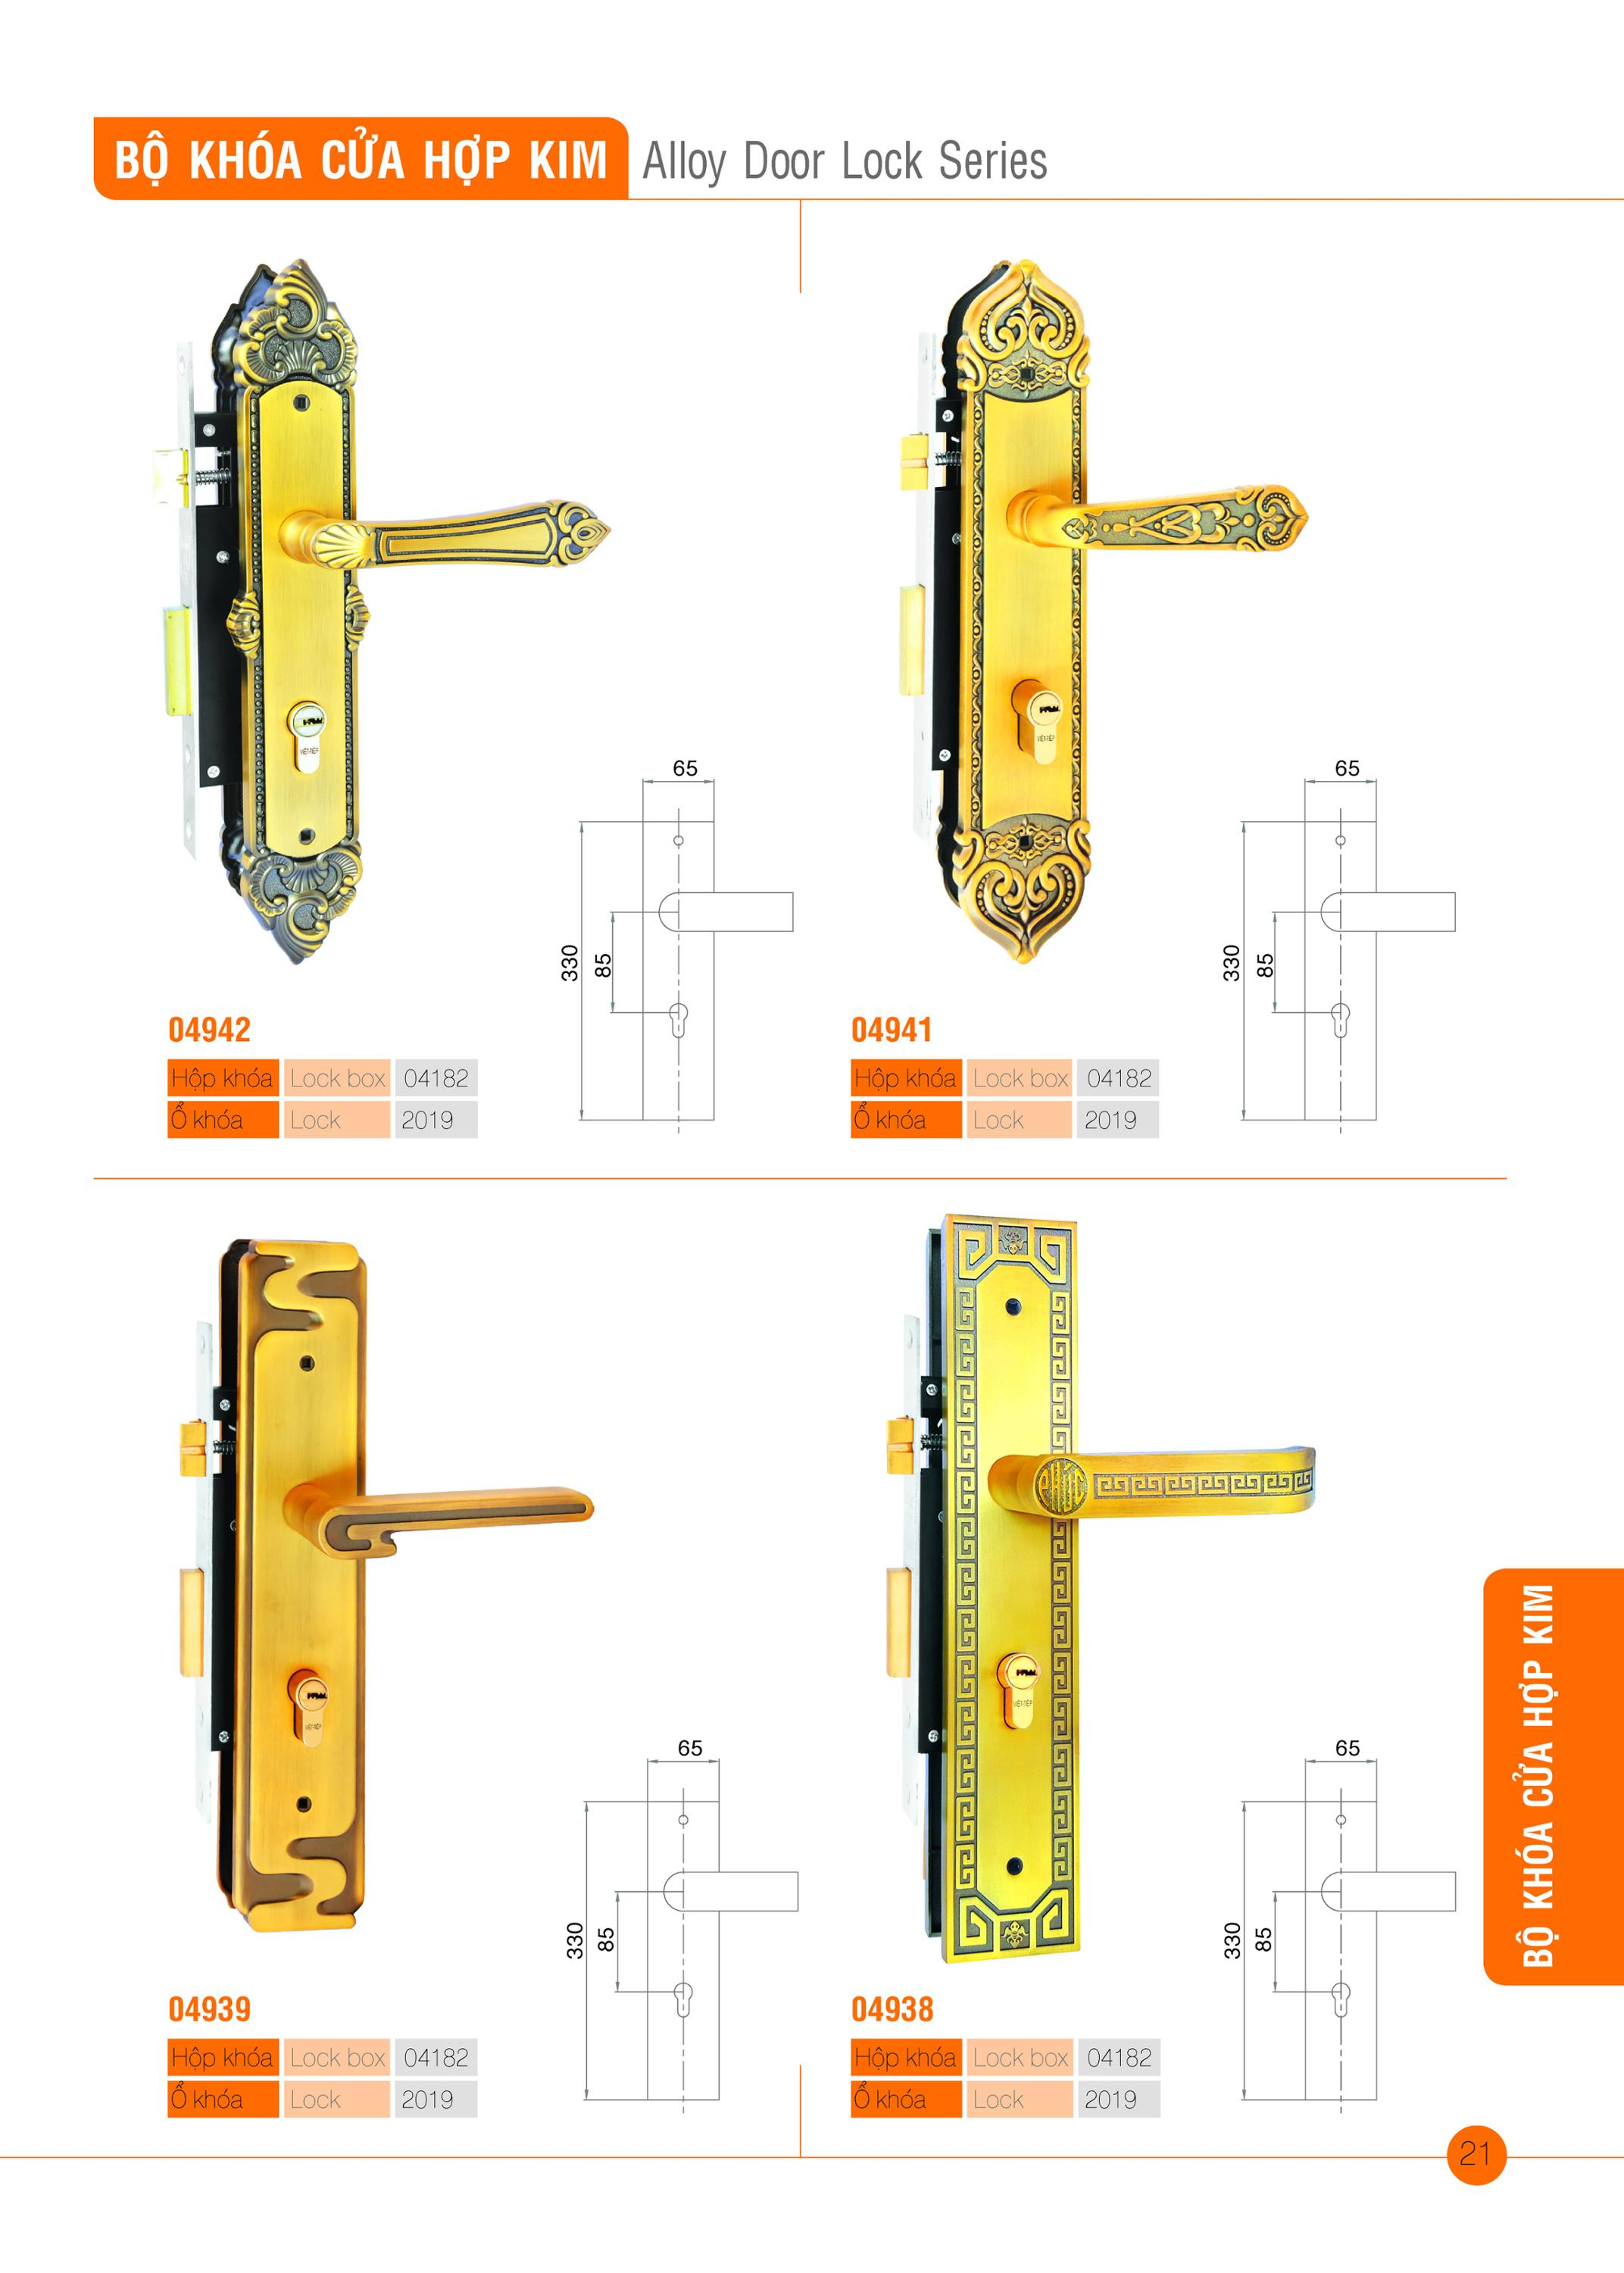 Alloy Door Lock Series